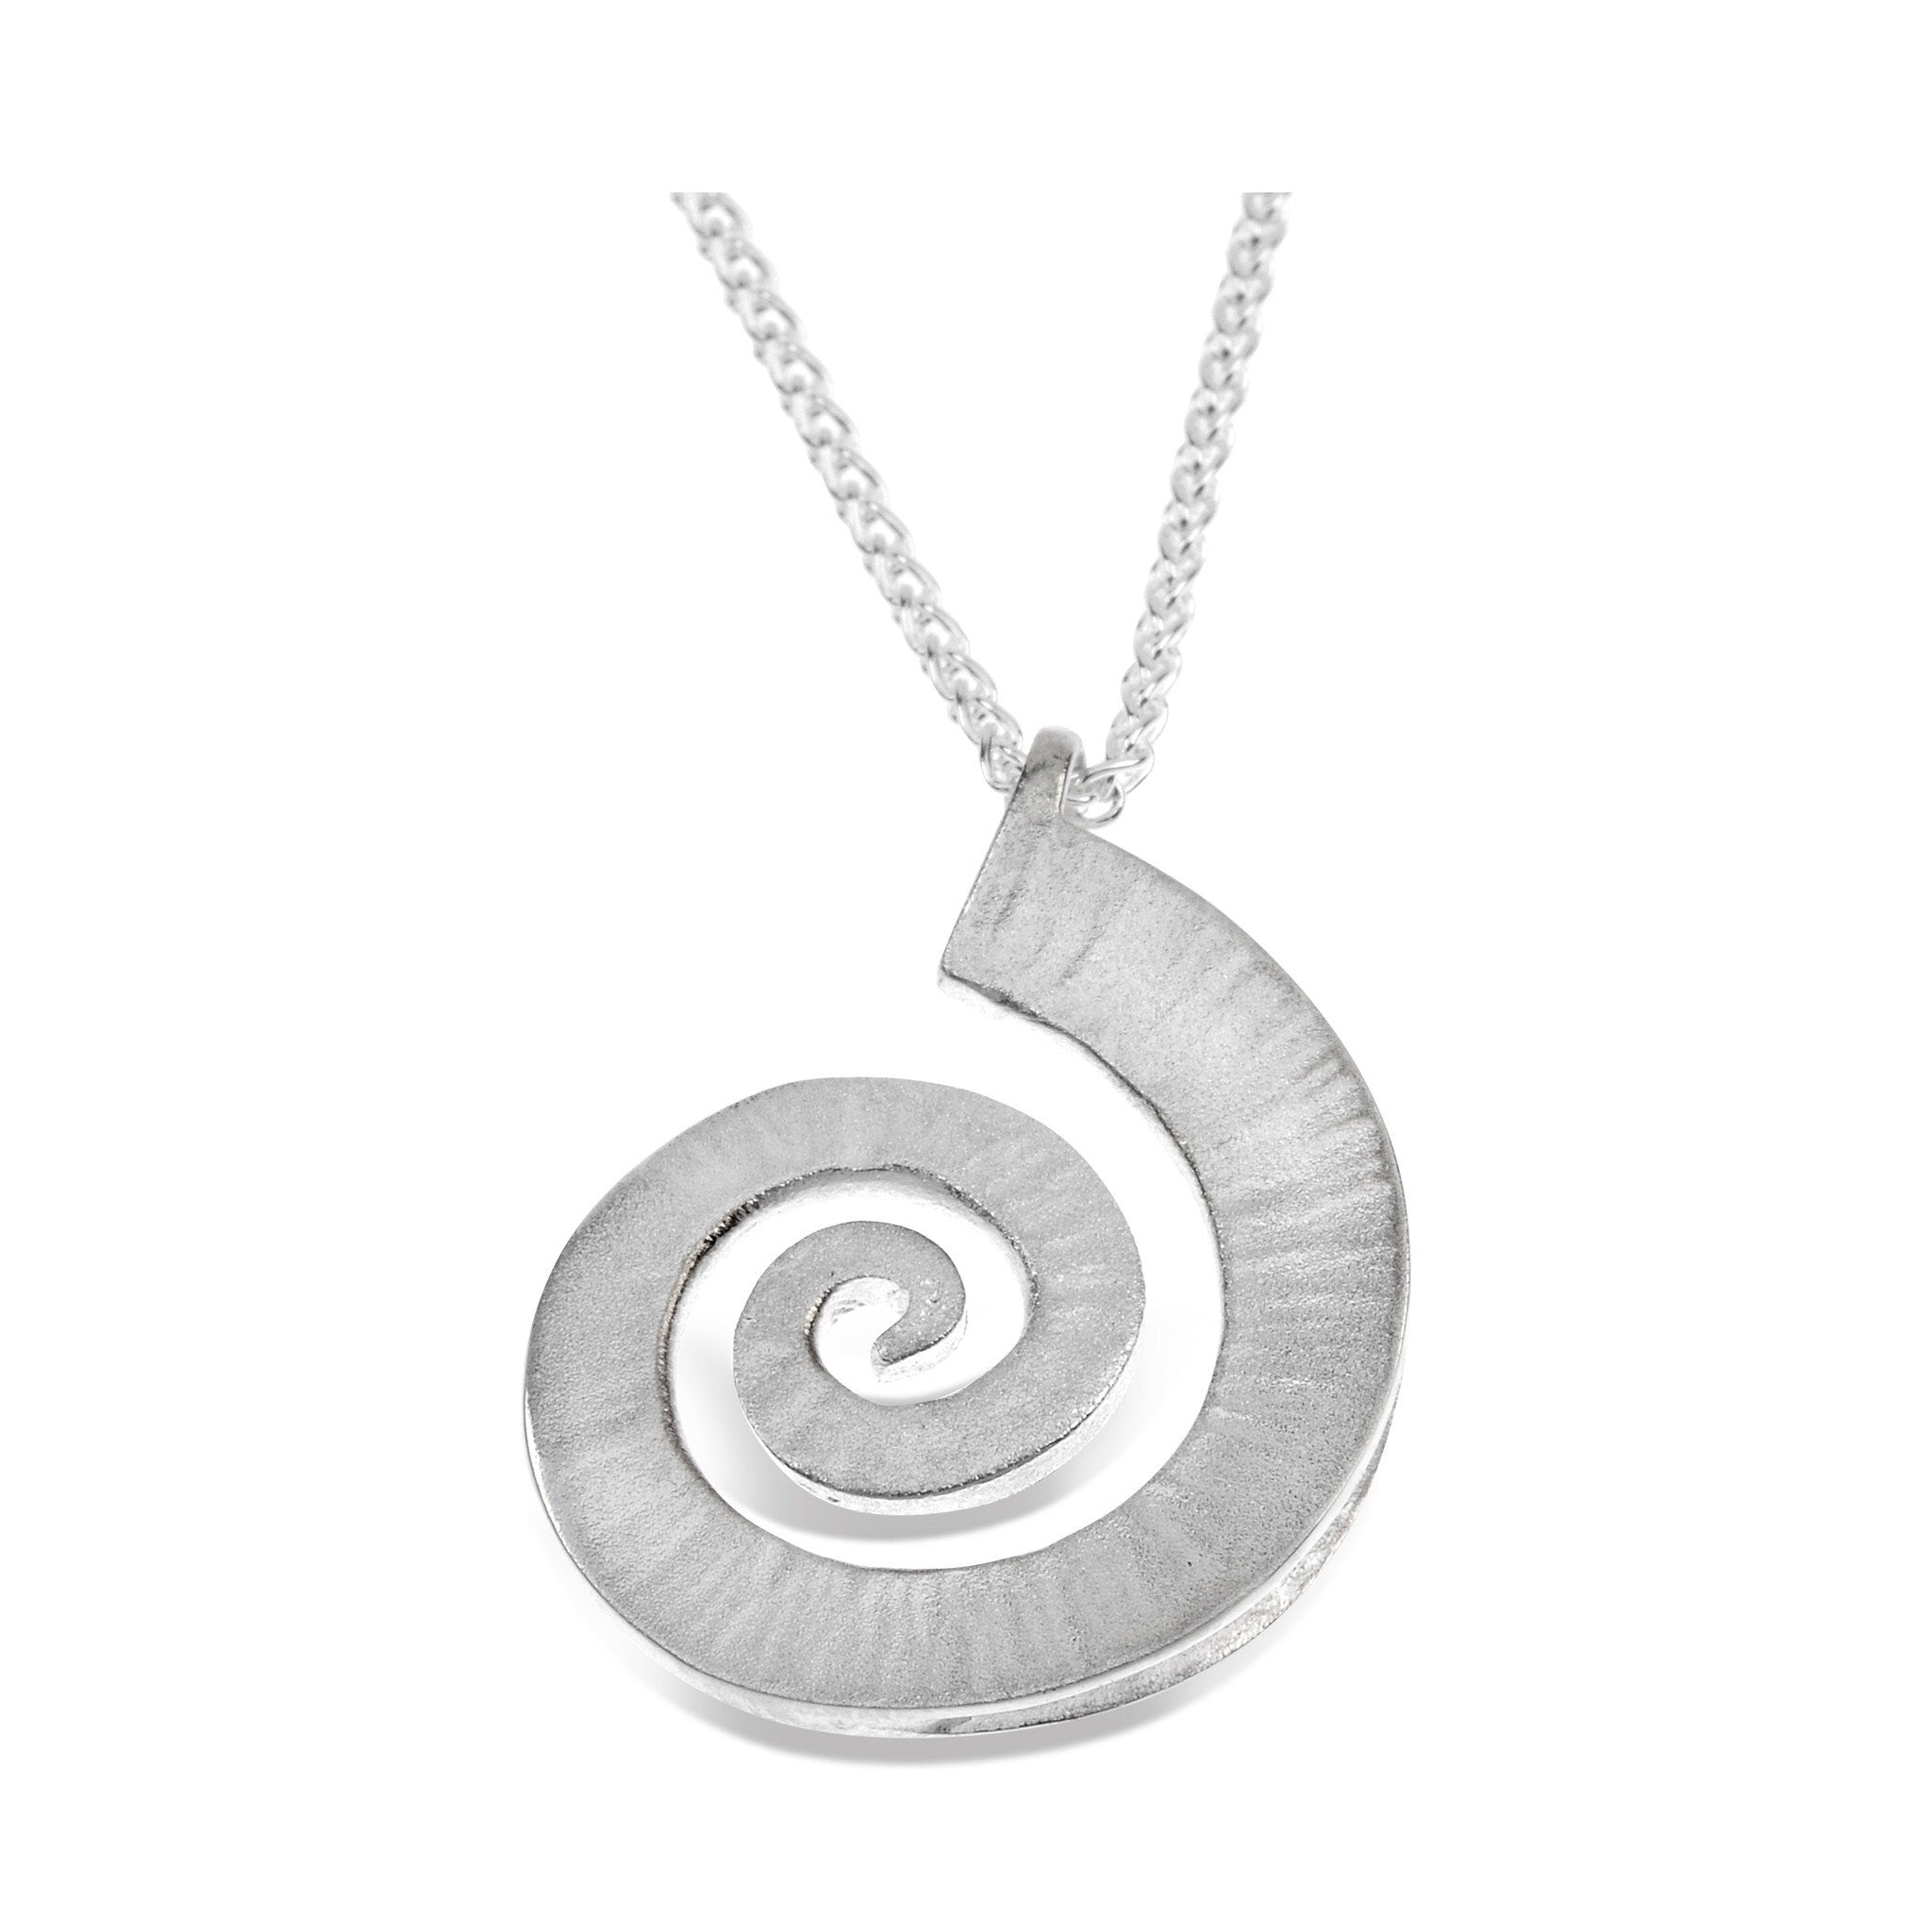 store crystal silver spiral necklace toned clear pendant